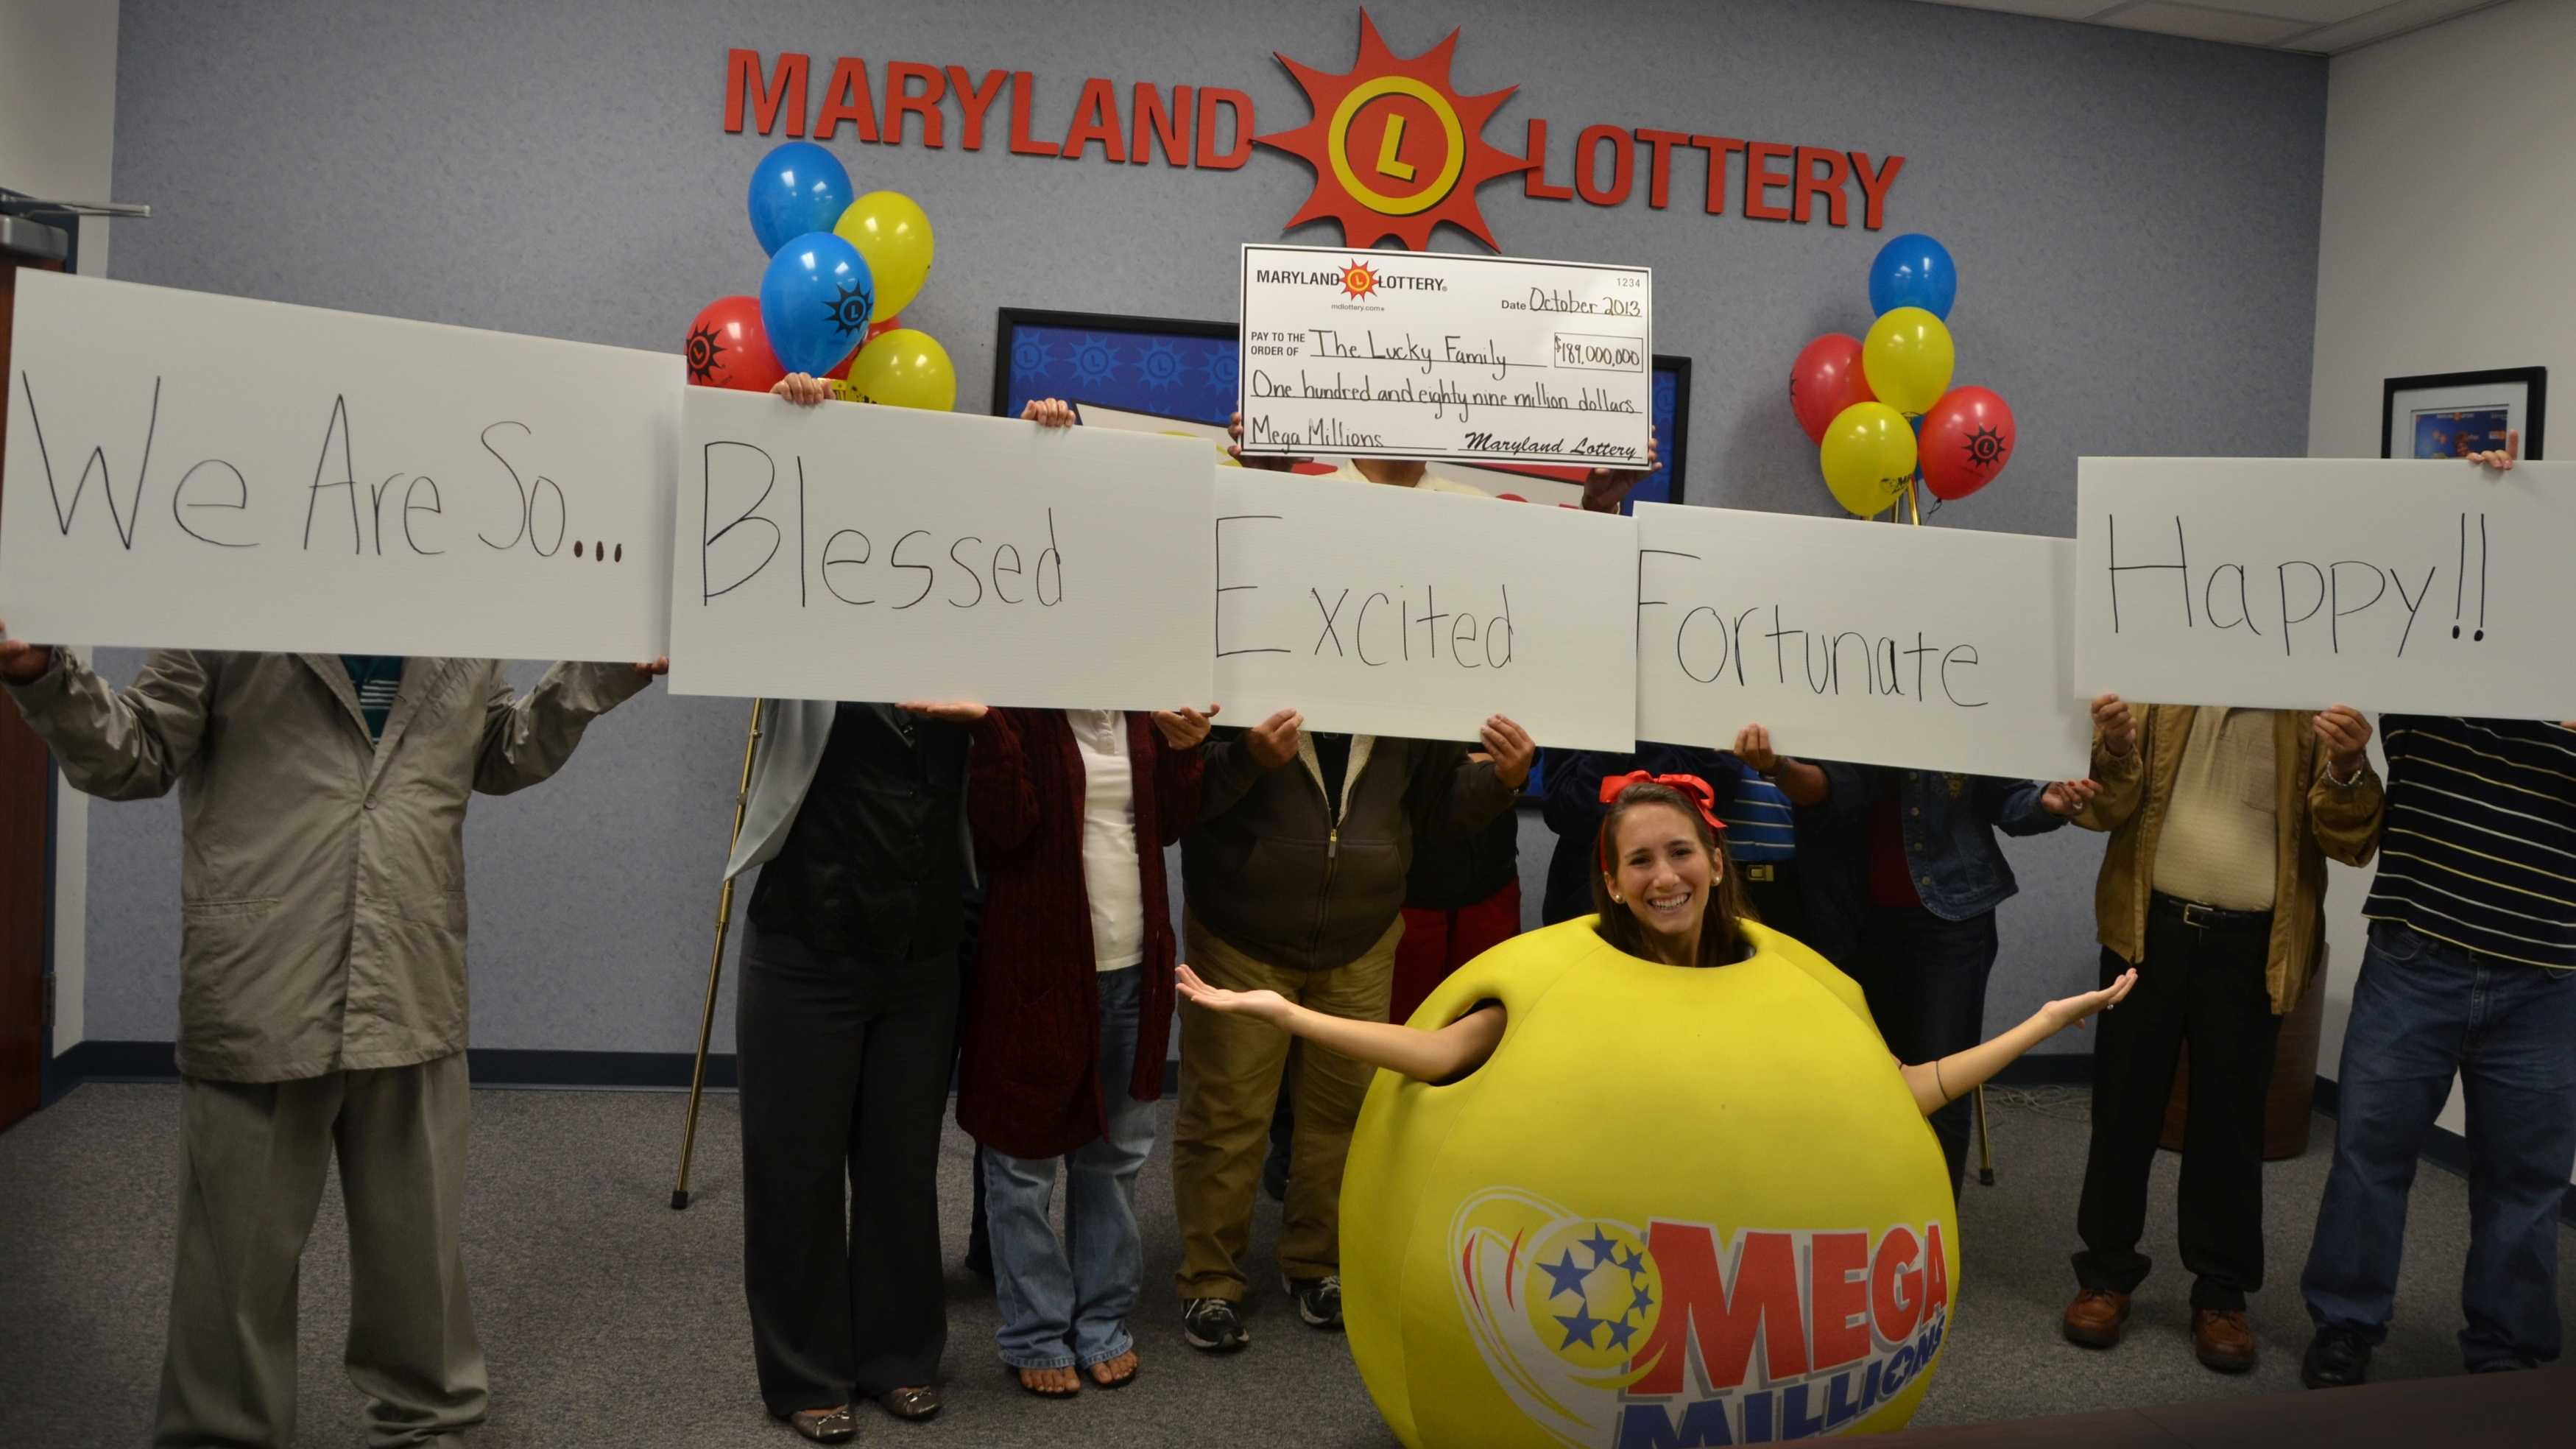 An Anne Arundel County man and his family claim the $189 million Mega Million jackpot drawing on Oct. 2, 2013.